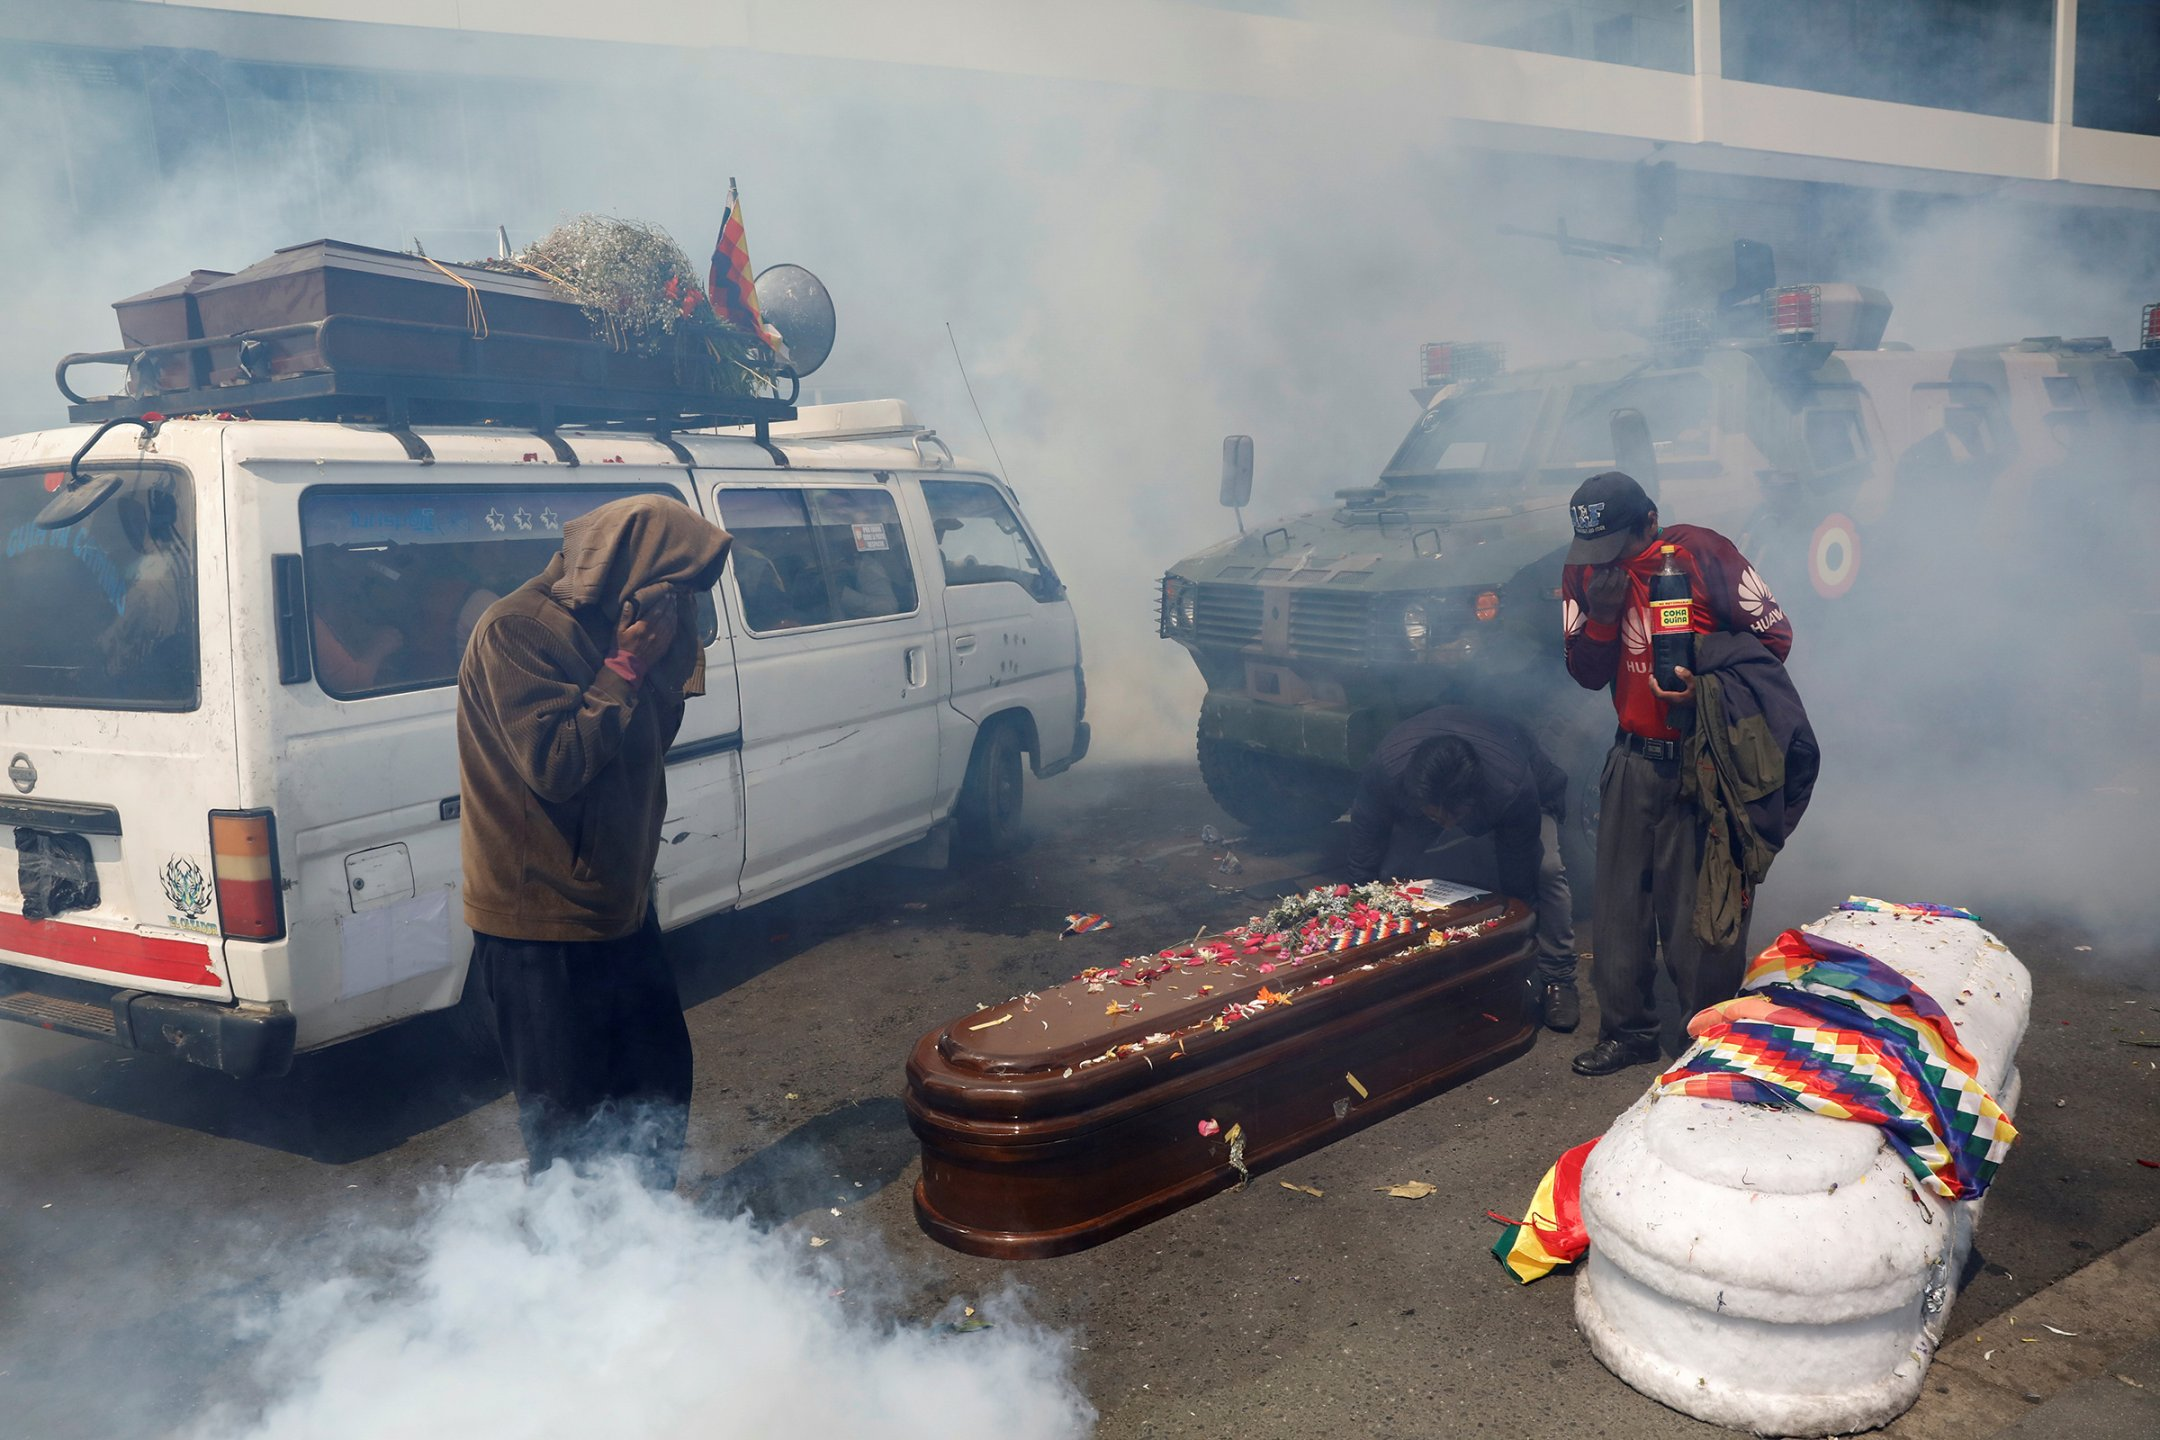 Supporters of former Bolivian President Evo Morales take cover from tear gas during a protest in La Paz on Nov. 21. They were carrying coffins of people they say were killed during recent clashes with security forces.